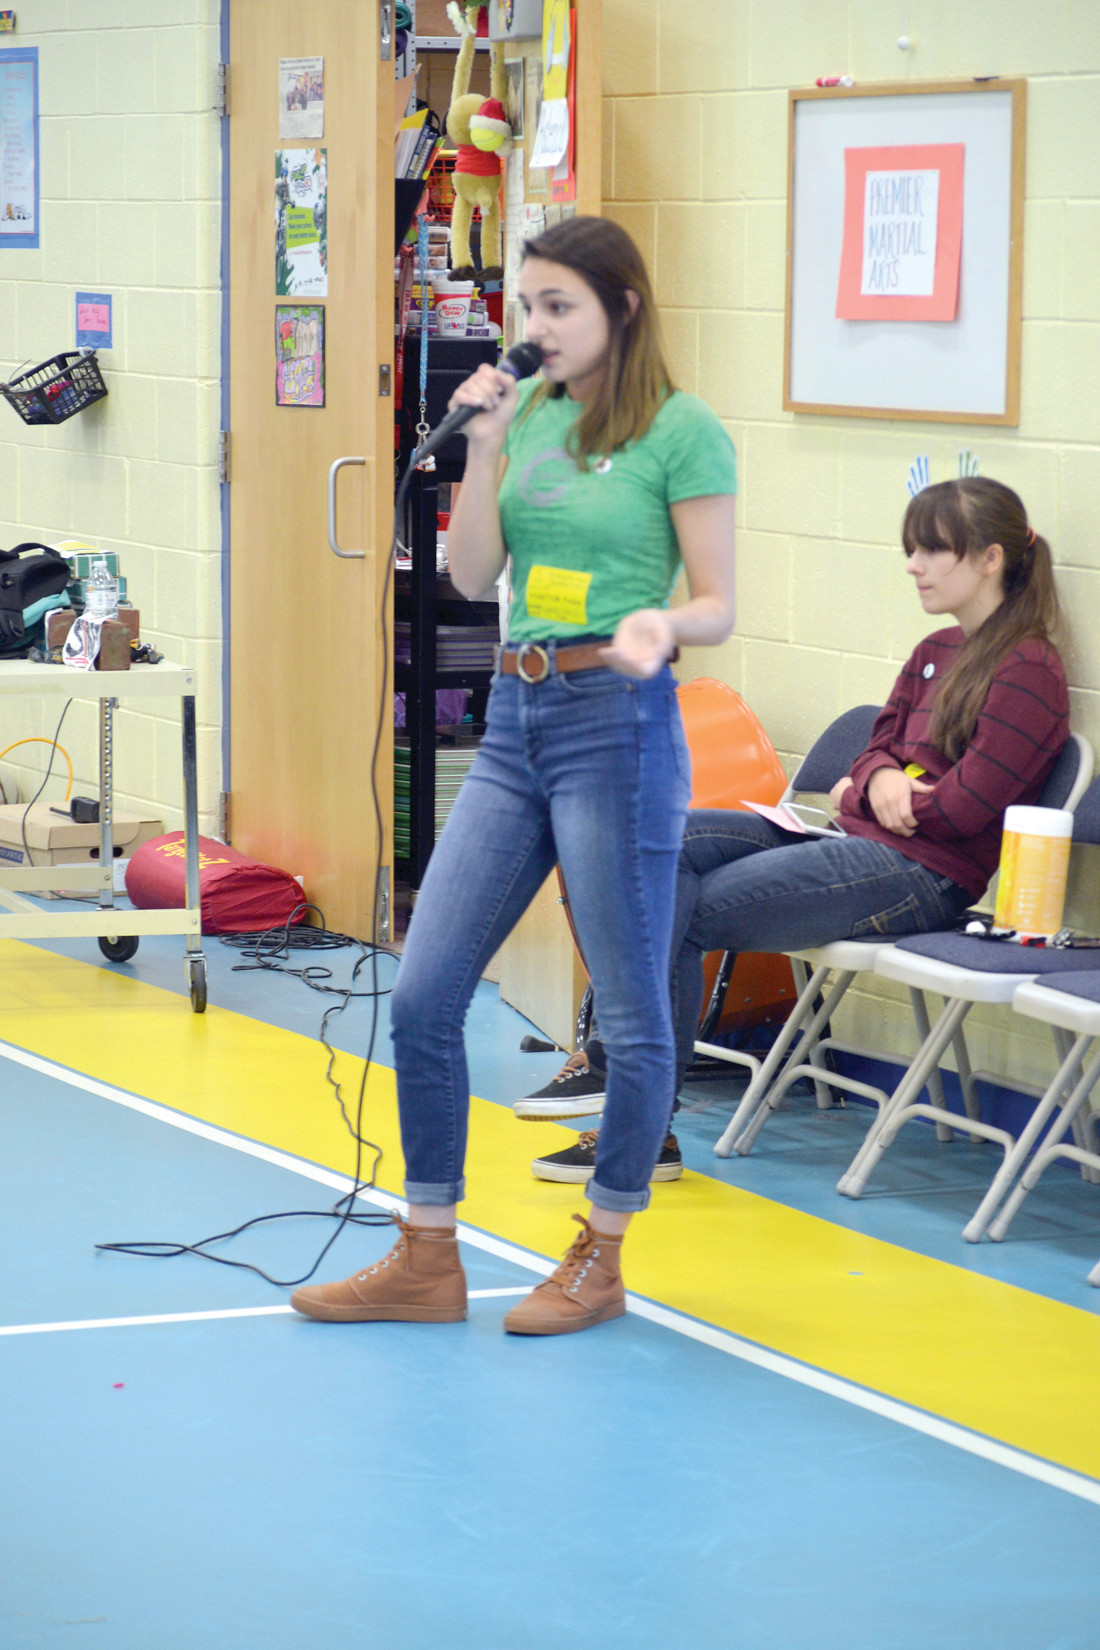 ANOTHER PERSPECTIVE: Jenna Andreozzi shared her stories of anxiety and depression with the entire school.